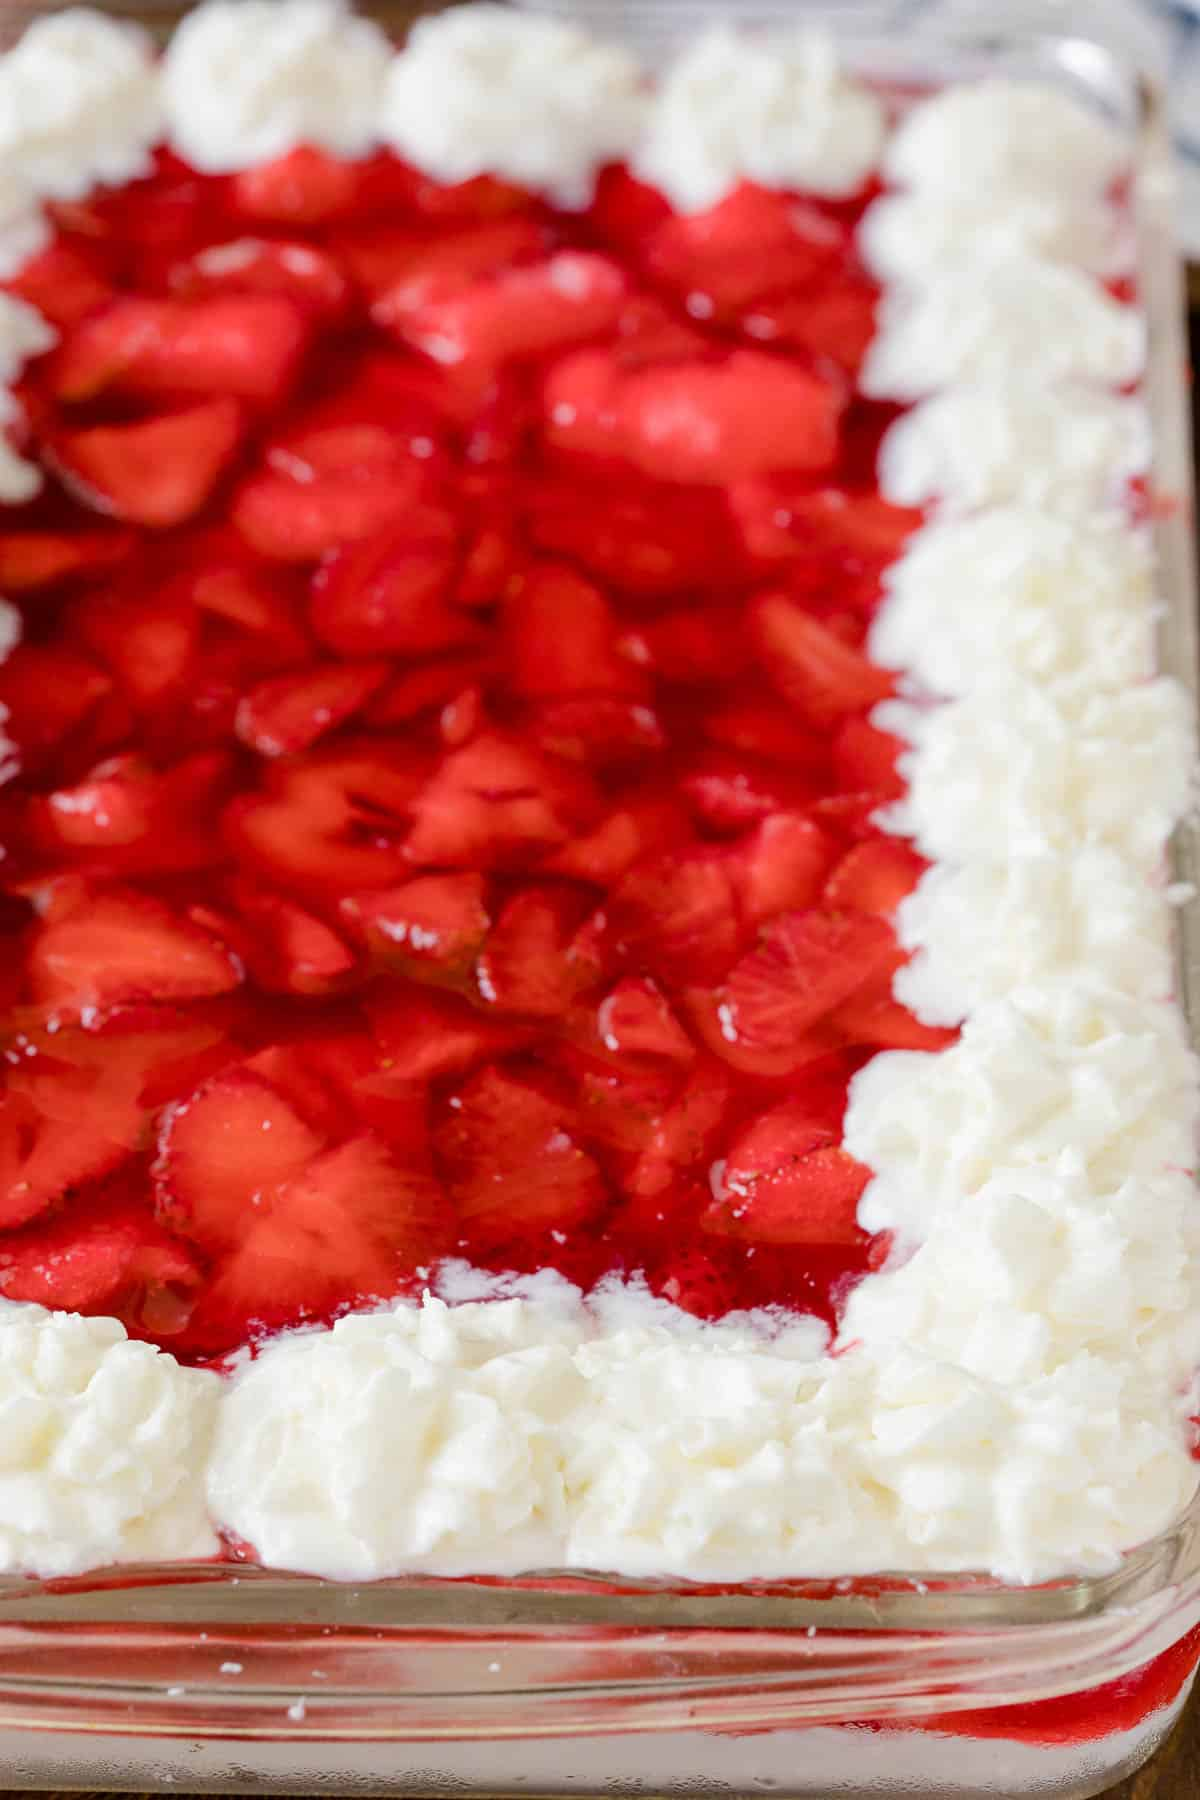 Strawberries in the snow in a casserole pan